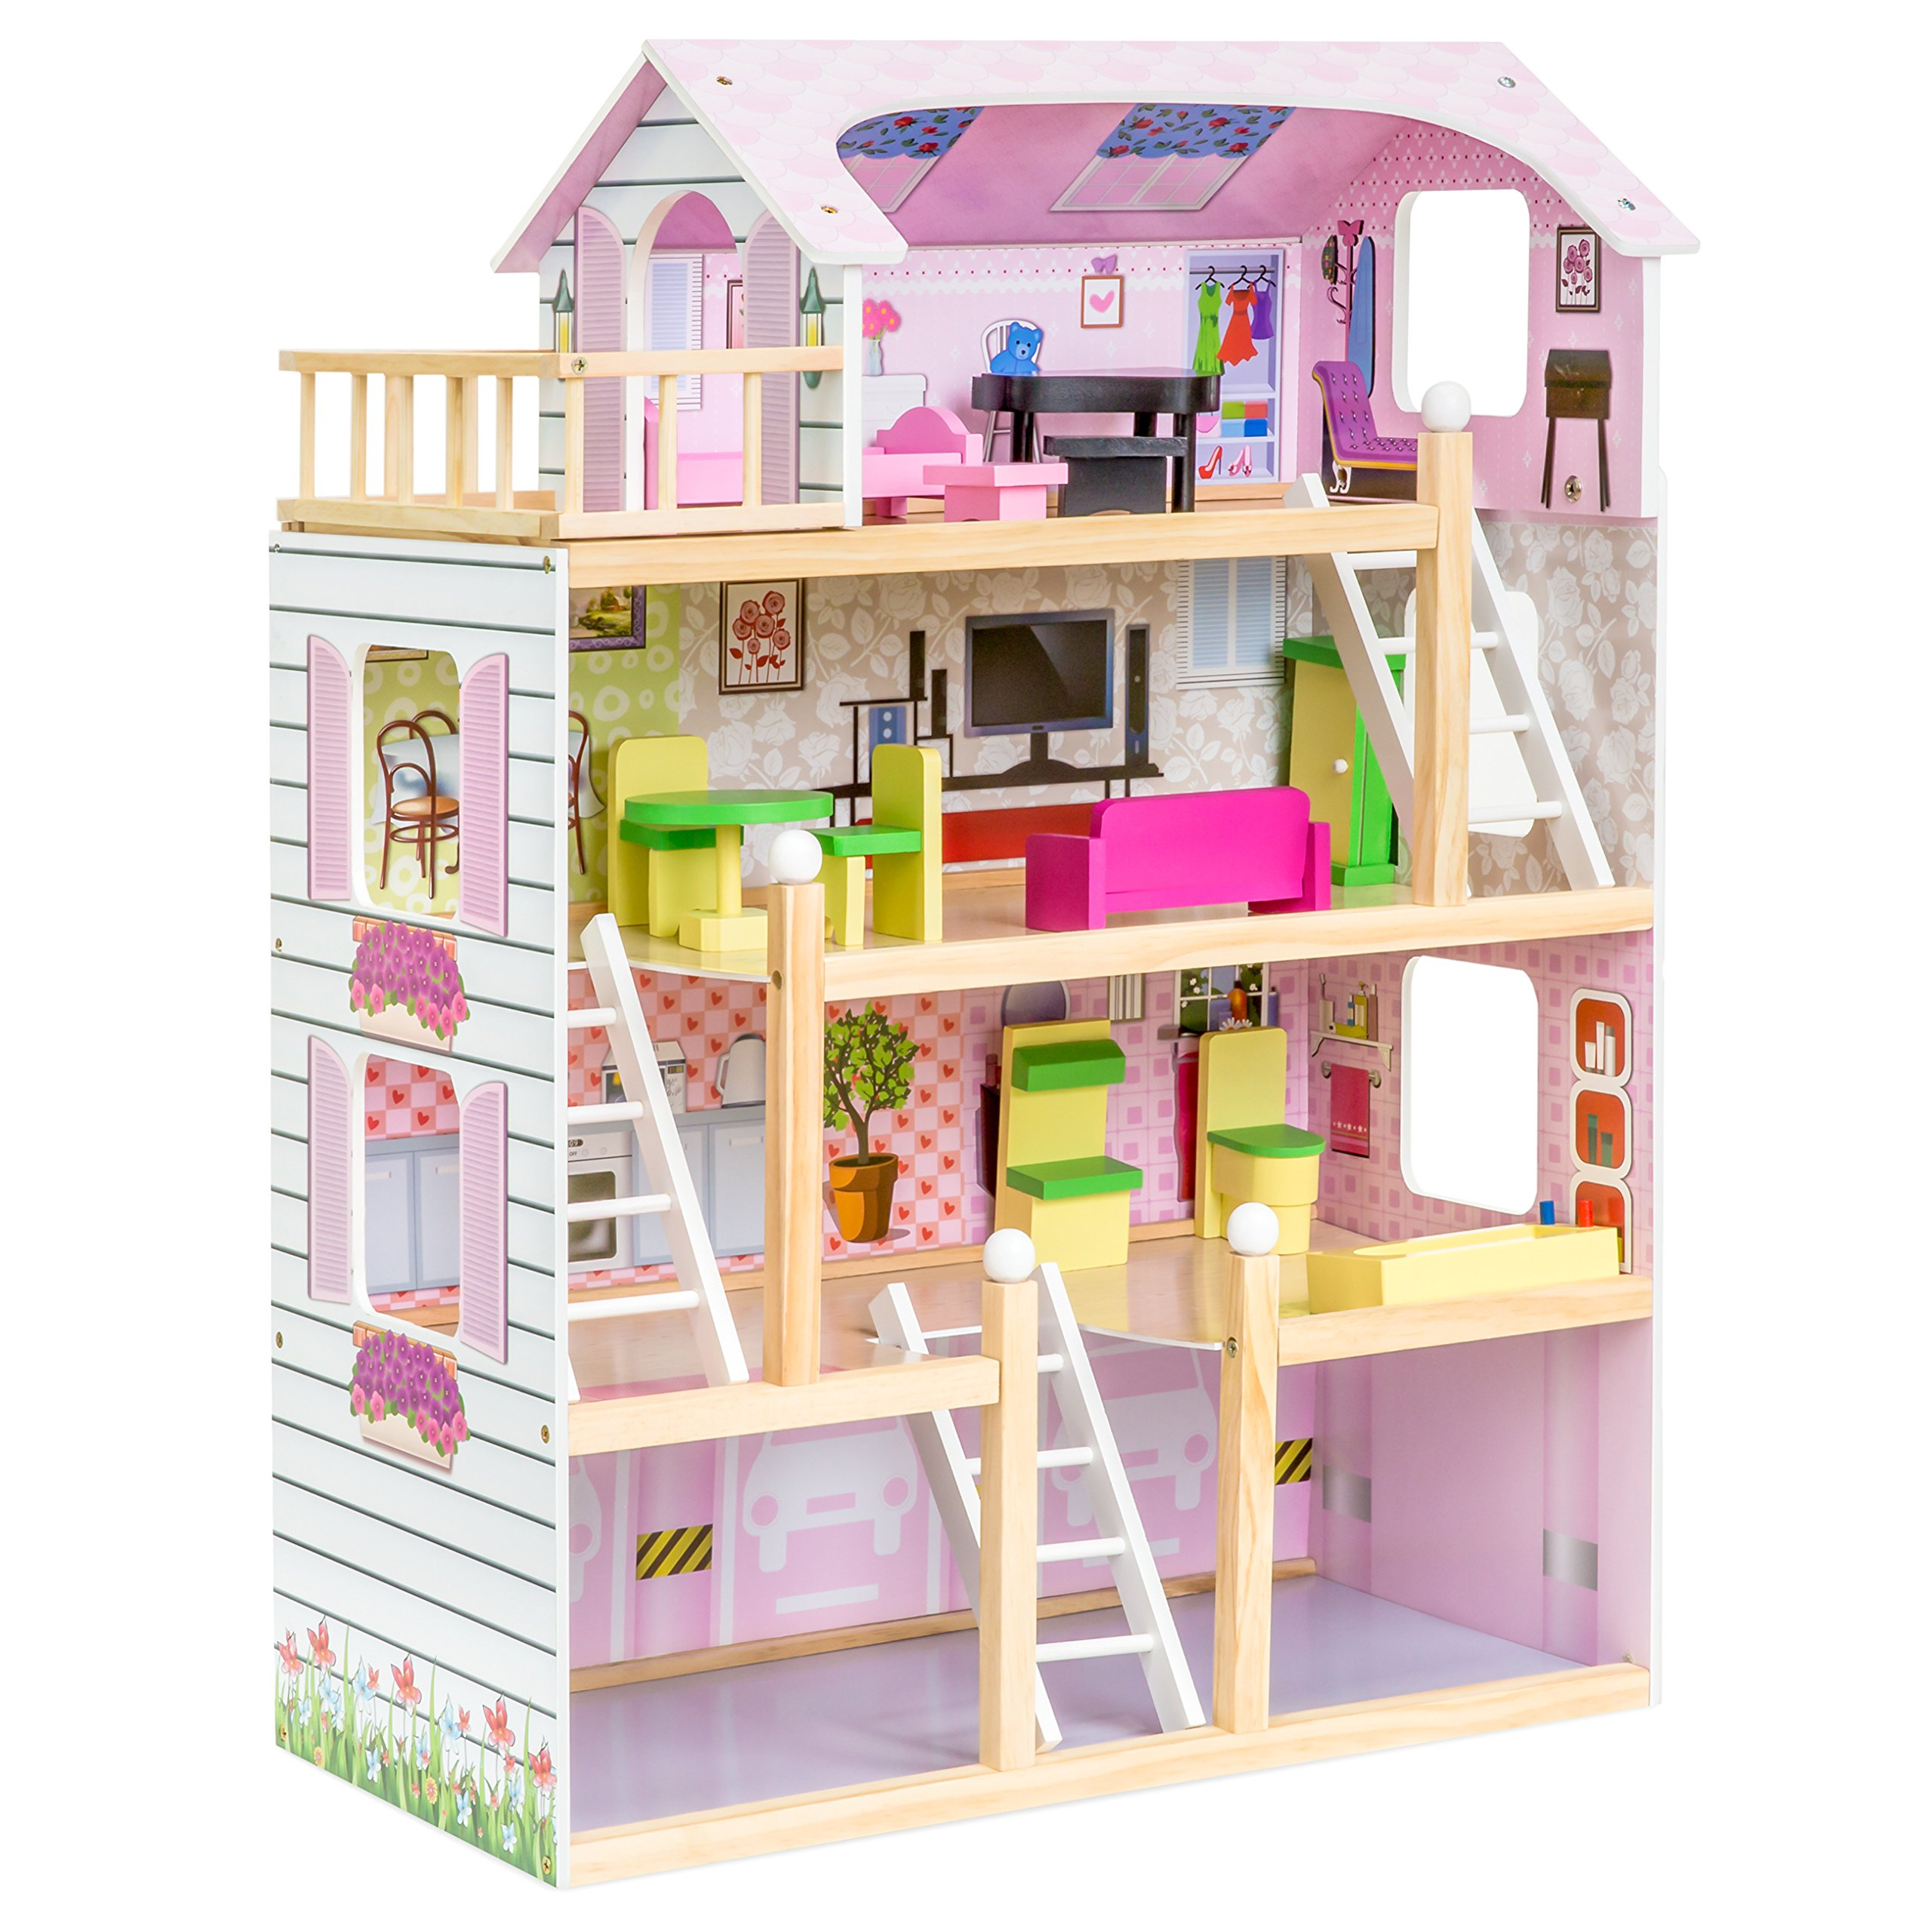 Best Choice Products 4-Level 32.25in Kids Wooden Cottage Uptown Dollhouse w/ 13 Pieces of Furniture, Play Accessories